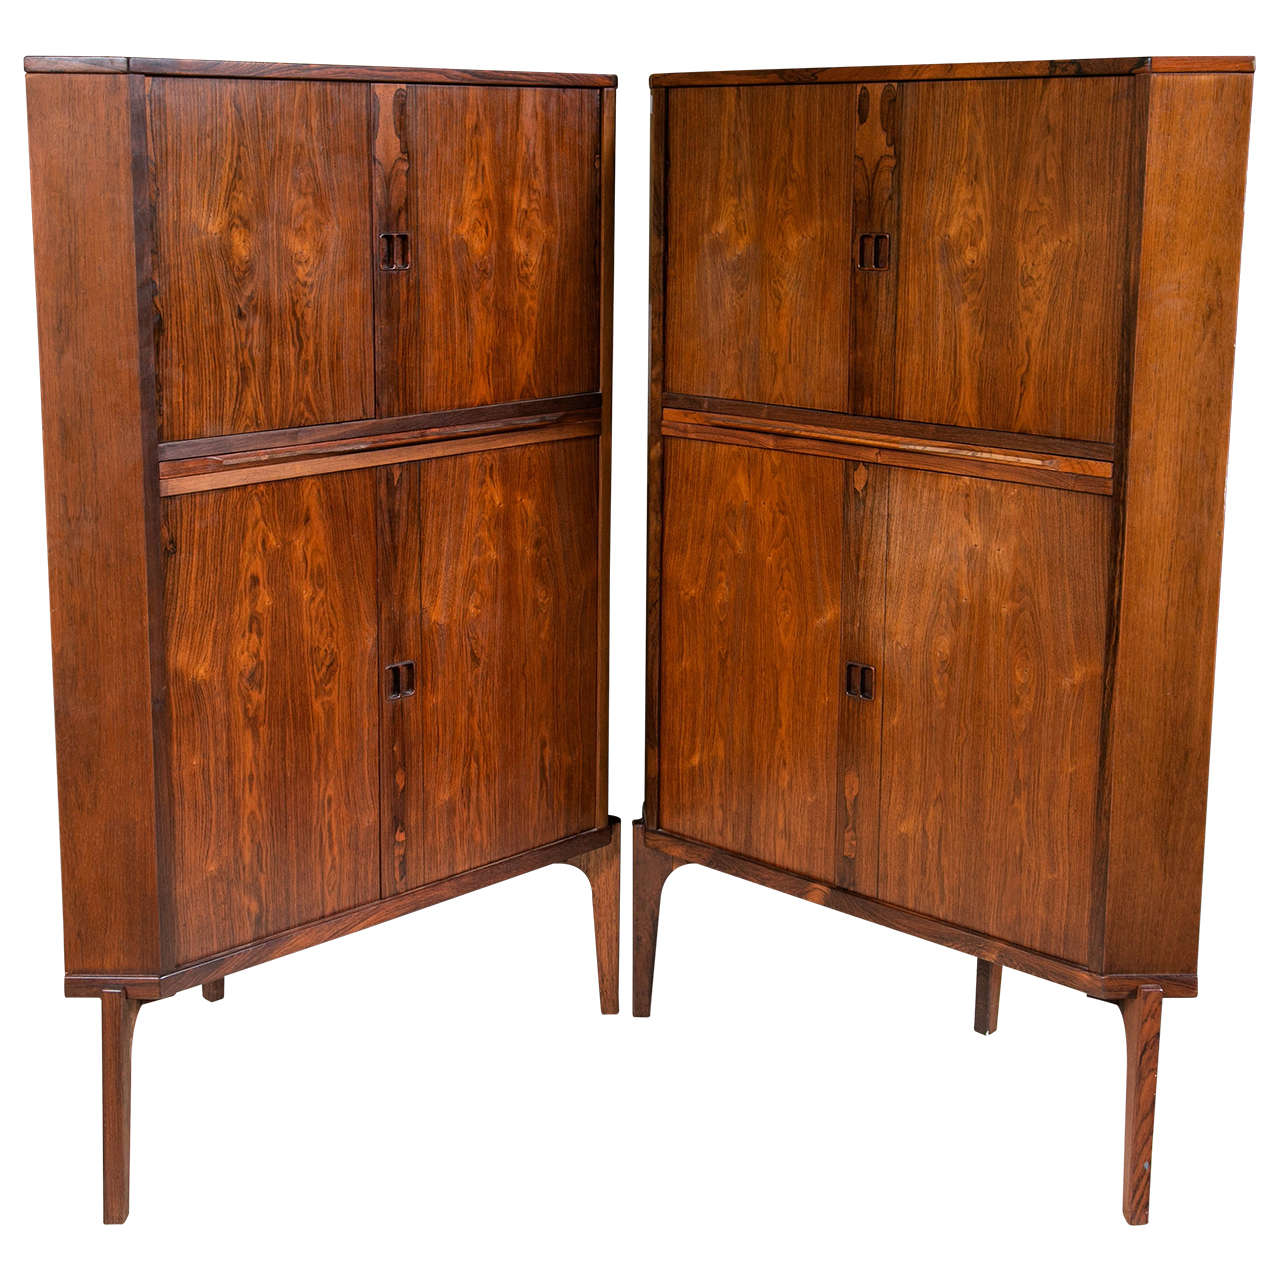 Pair of Mid-Century Modern Danish Rosewood Corner Cabinets or Bars Raised Legs  sc 1 st  1stDibs & Rosewood Corner Cabinet with Mirrored Bar and Melamine Shelf and ...